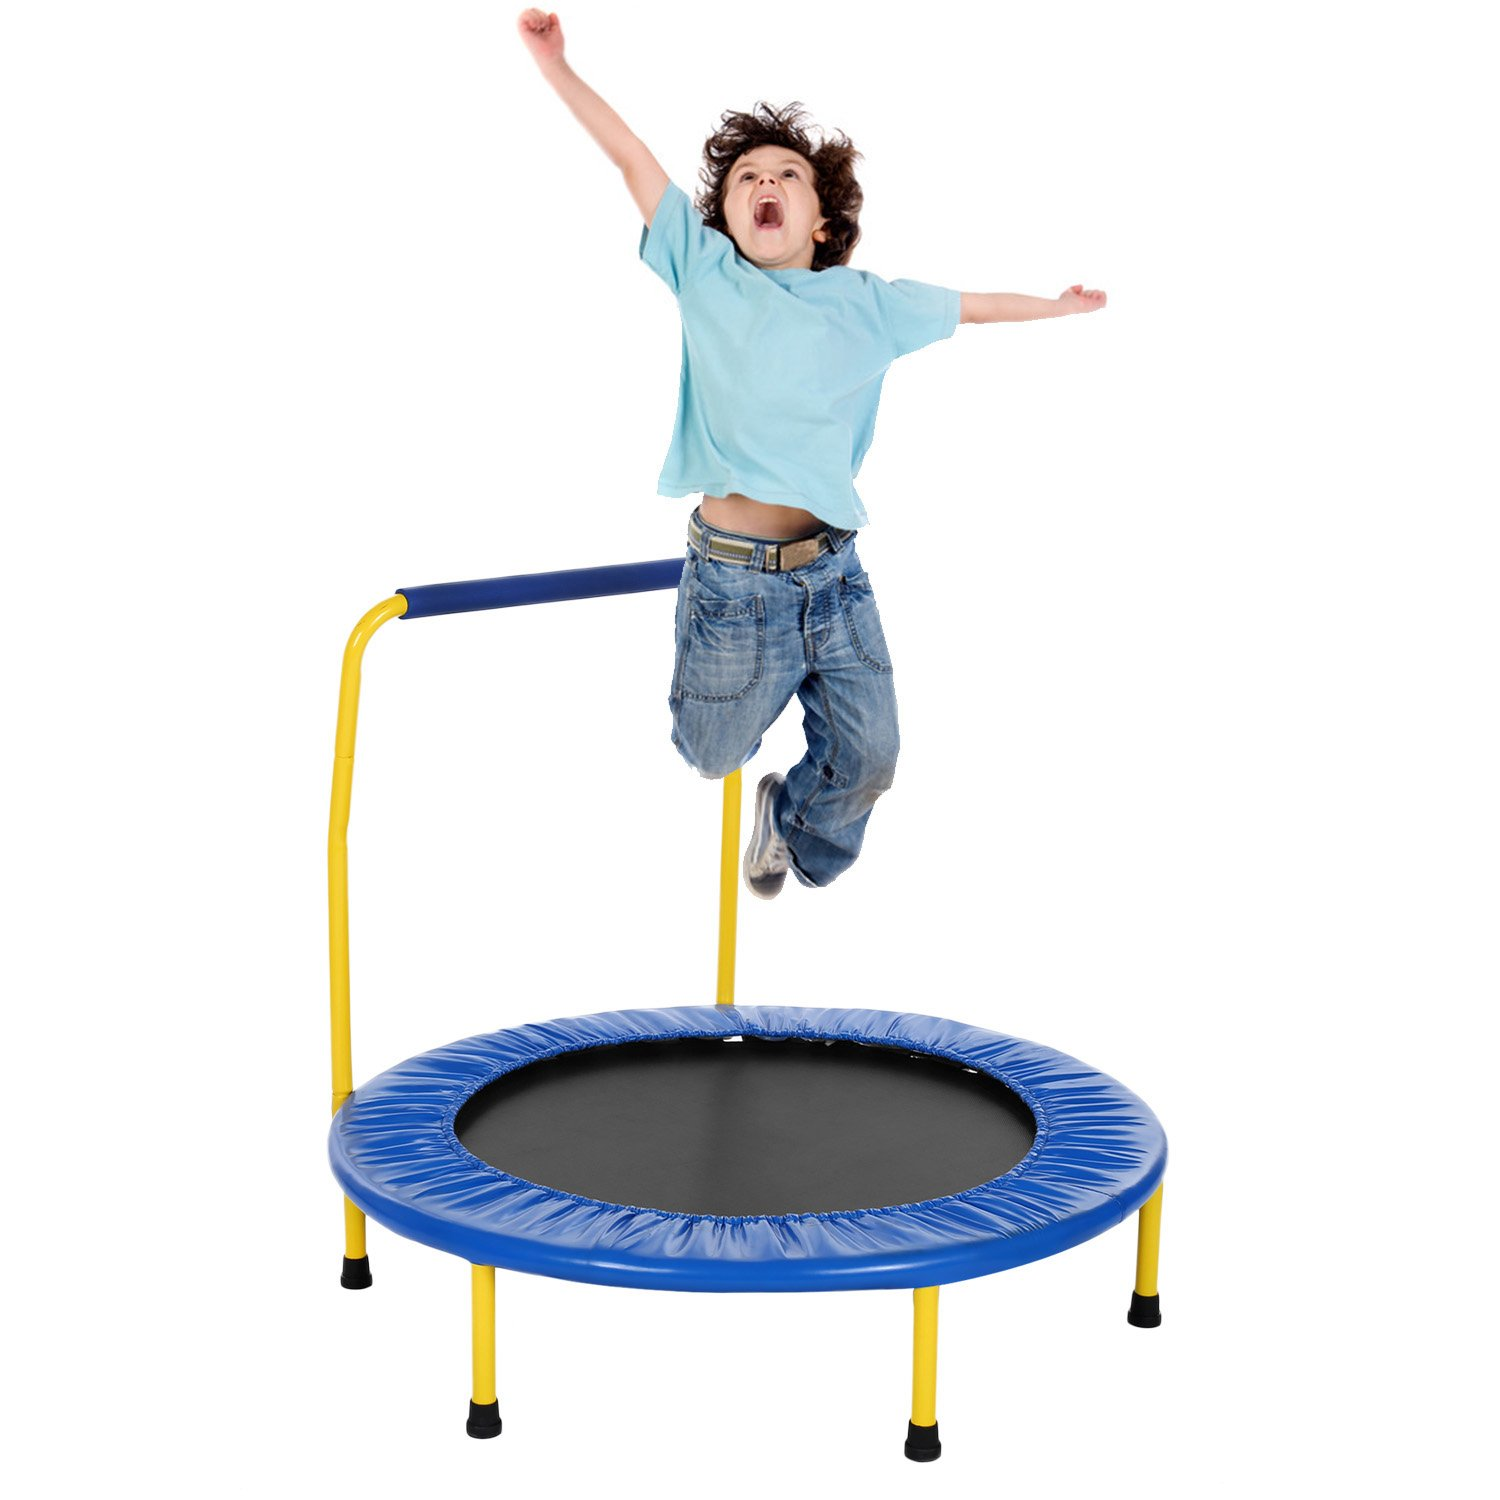 Tomasar 36'' Mini Kids Trampoline Foldable Rebounder Fitness Indoor or Outdoor Trampoline with Balance Handrail (Blue)